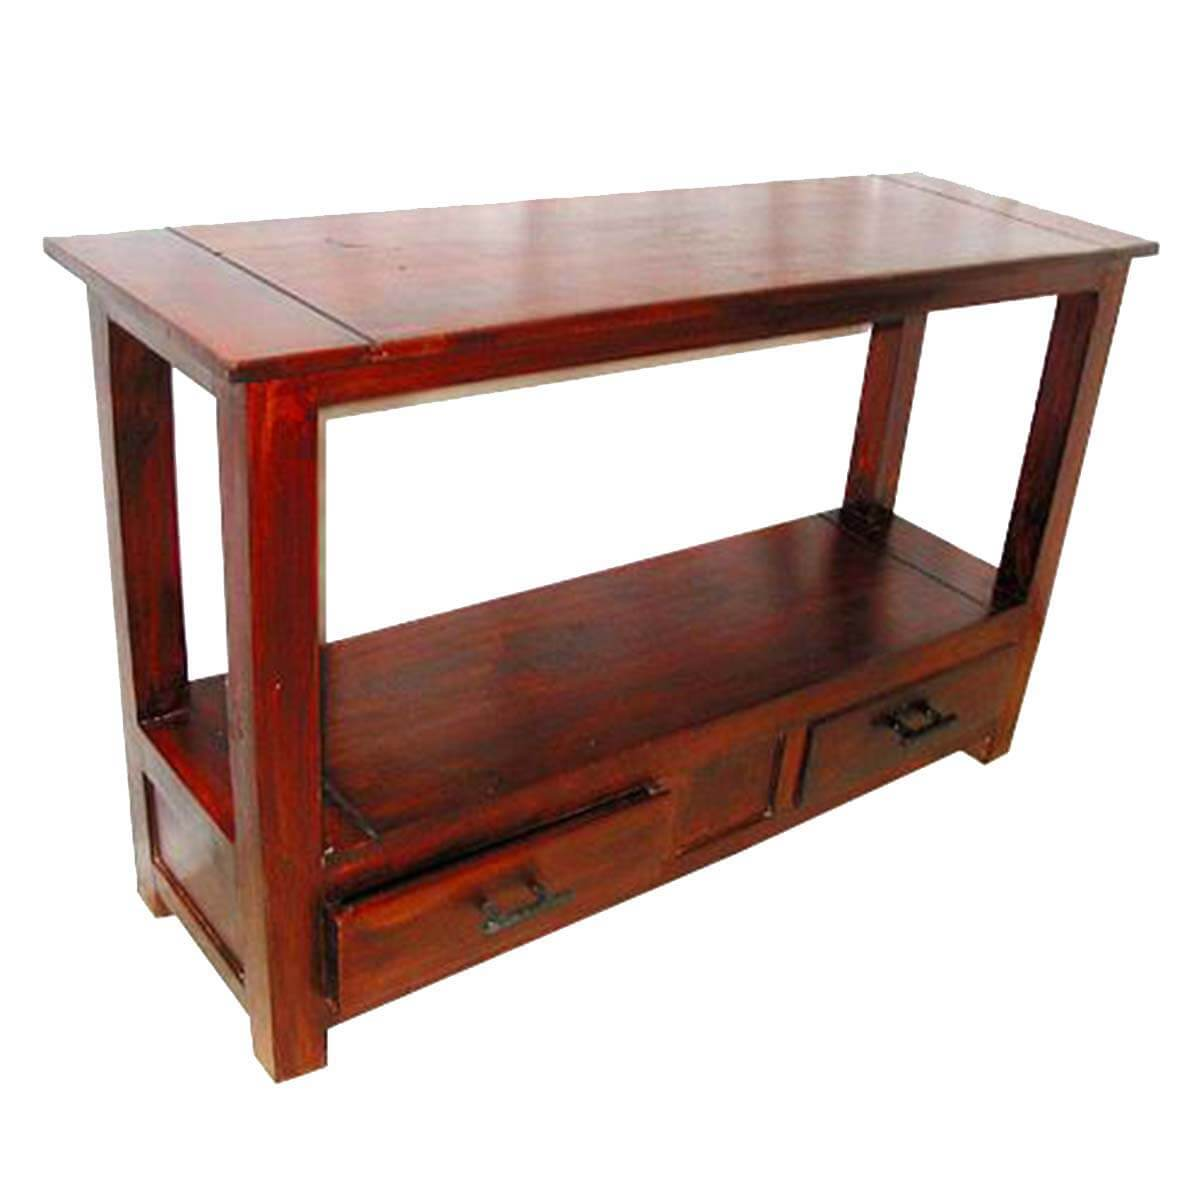 Foyer Console : Solid wood console hall entry foyer table furniture